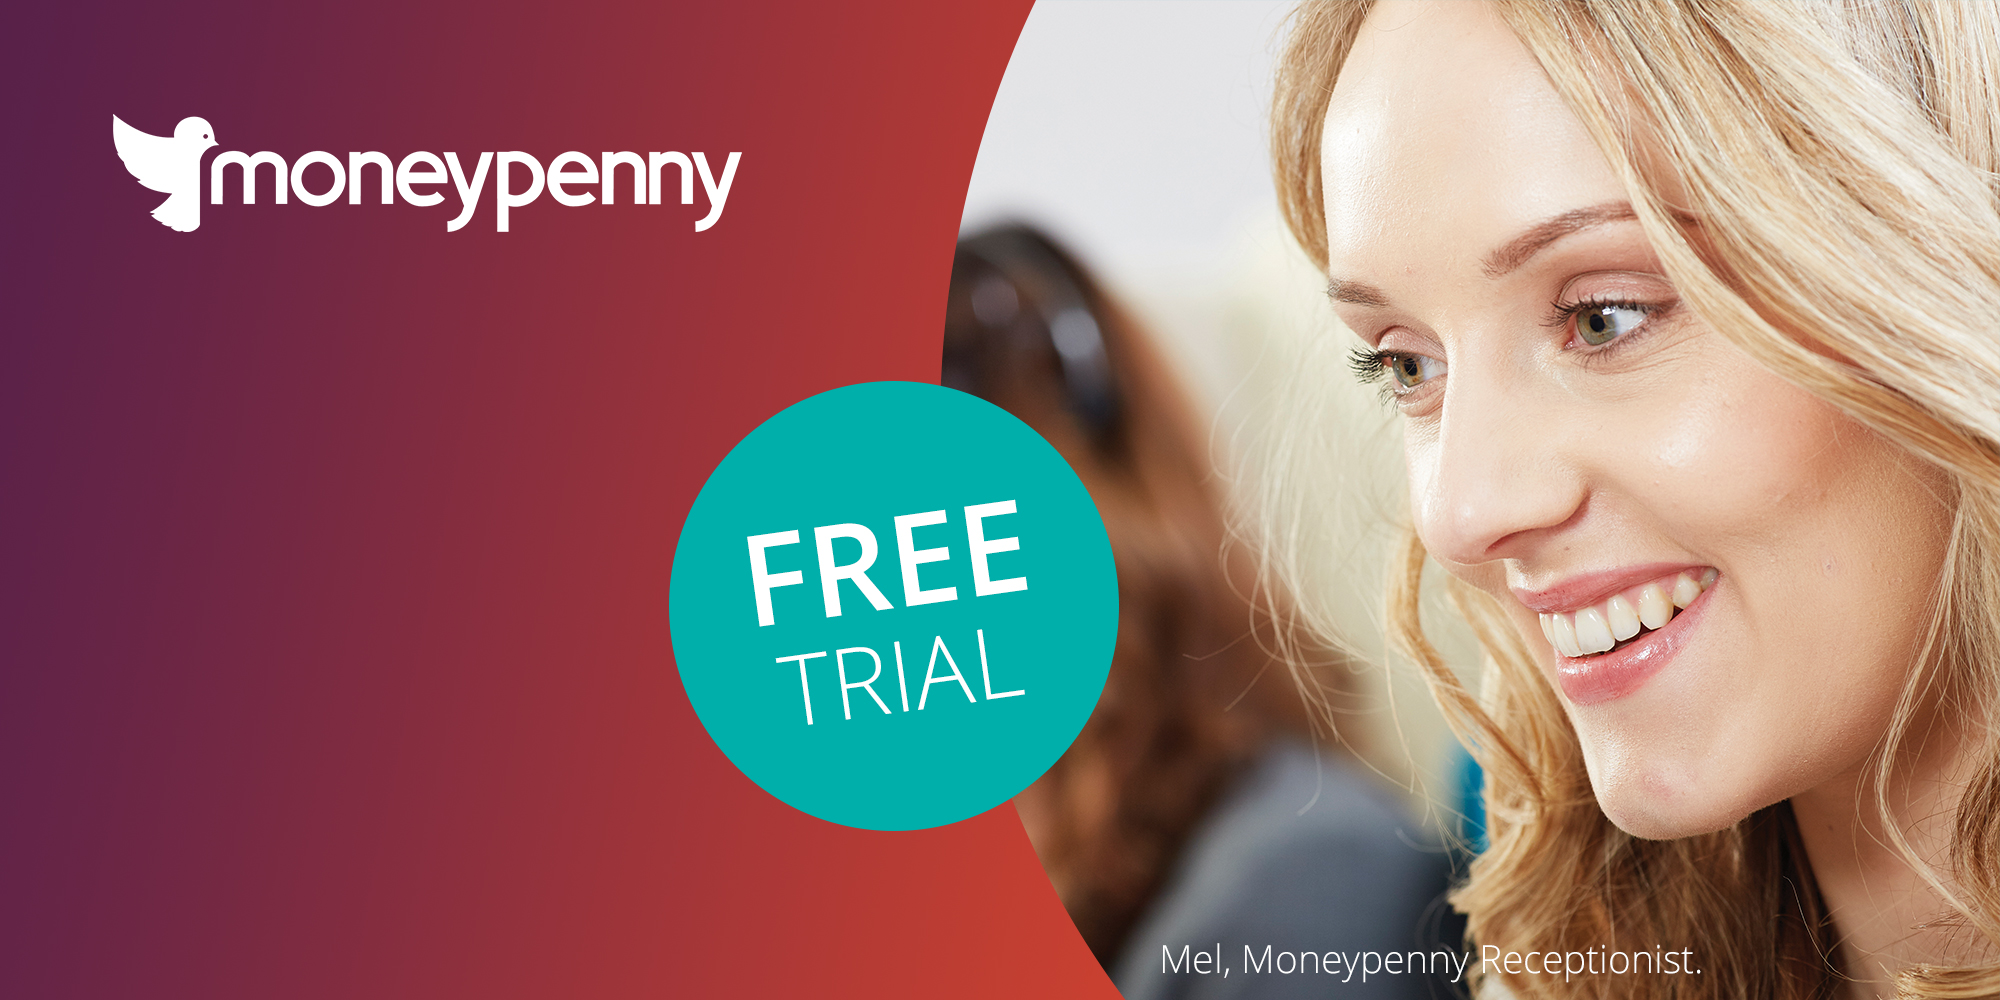 Directory page Moneypenny image